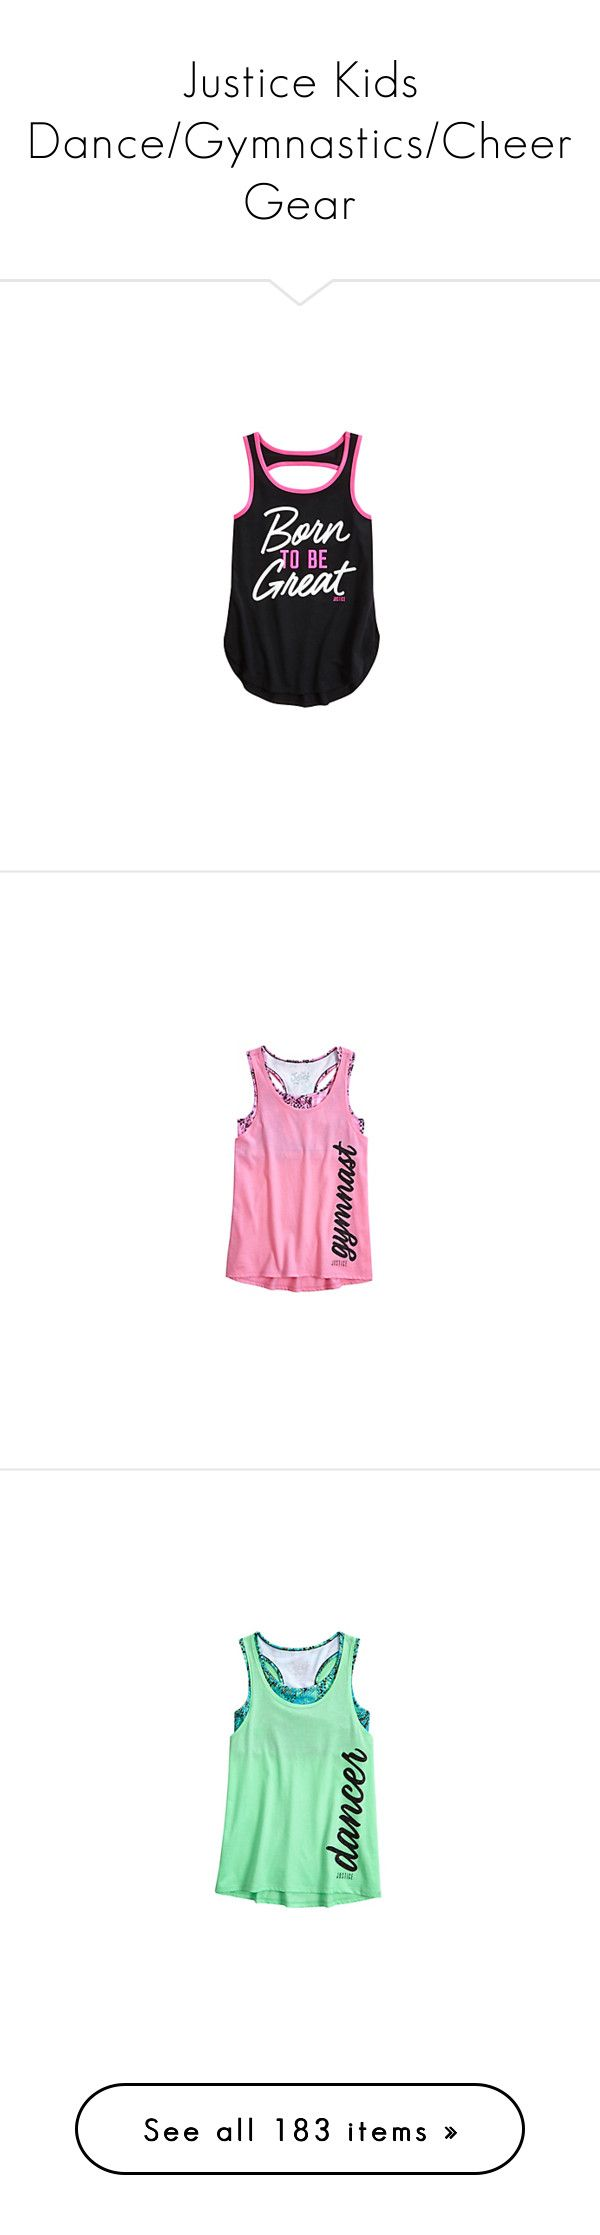 """Justice Kids Dance/Gymnastics/Cheer Gear"" by gymholic ❤ liked on Polyvore featuring gymnast and sport"